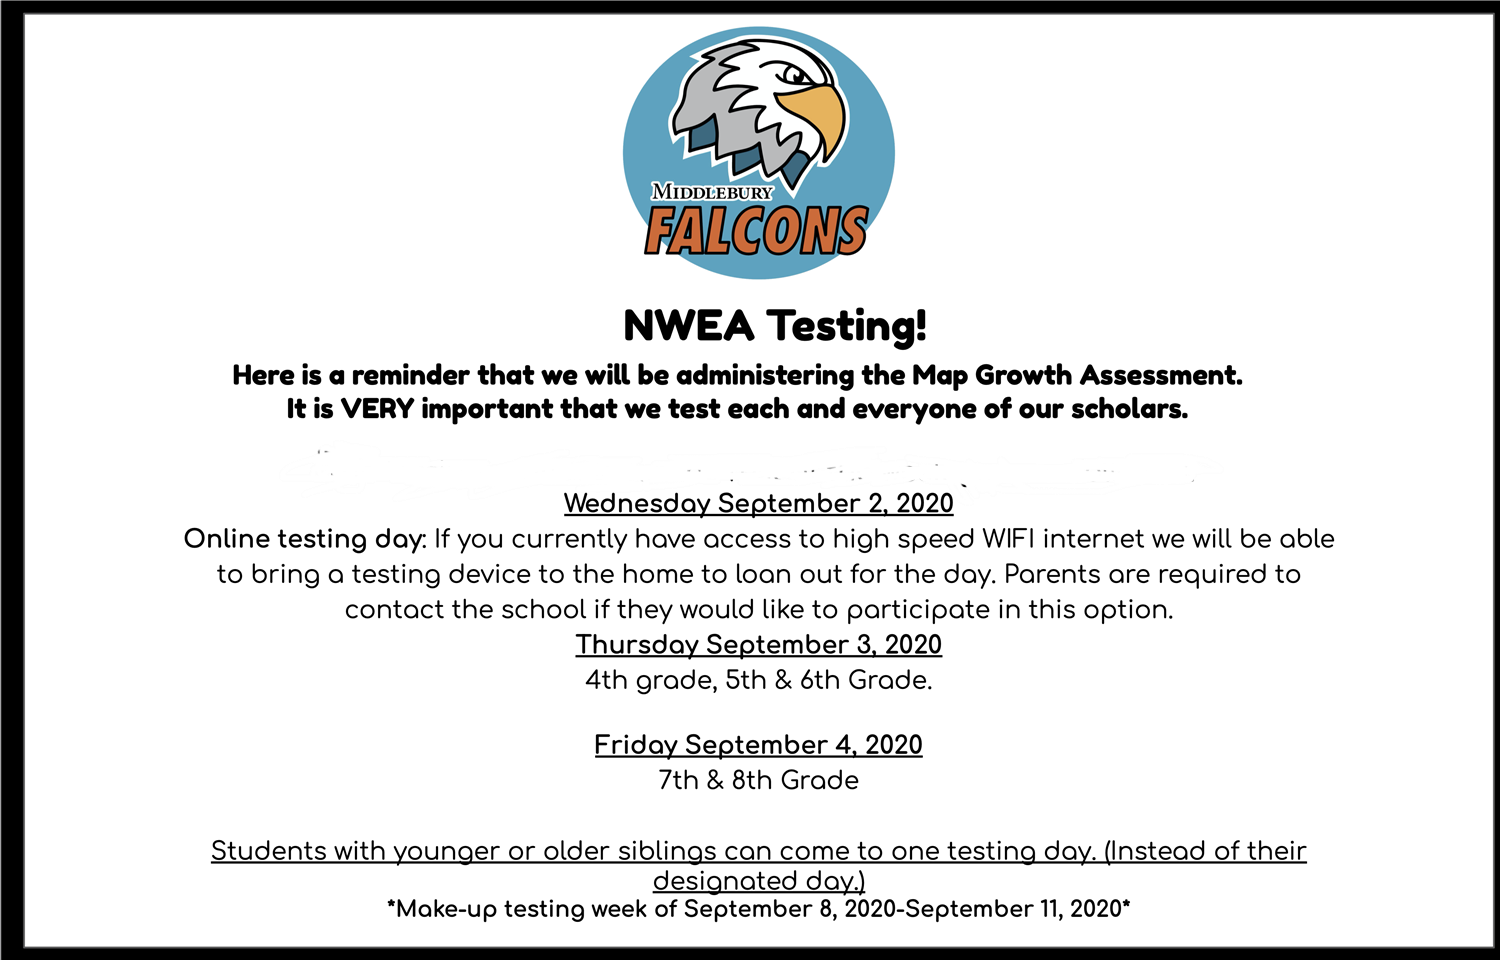 NWEA Testing at Middlebury Academy